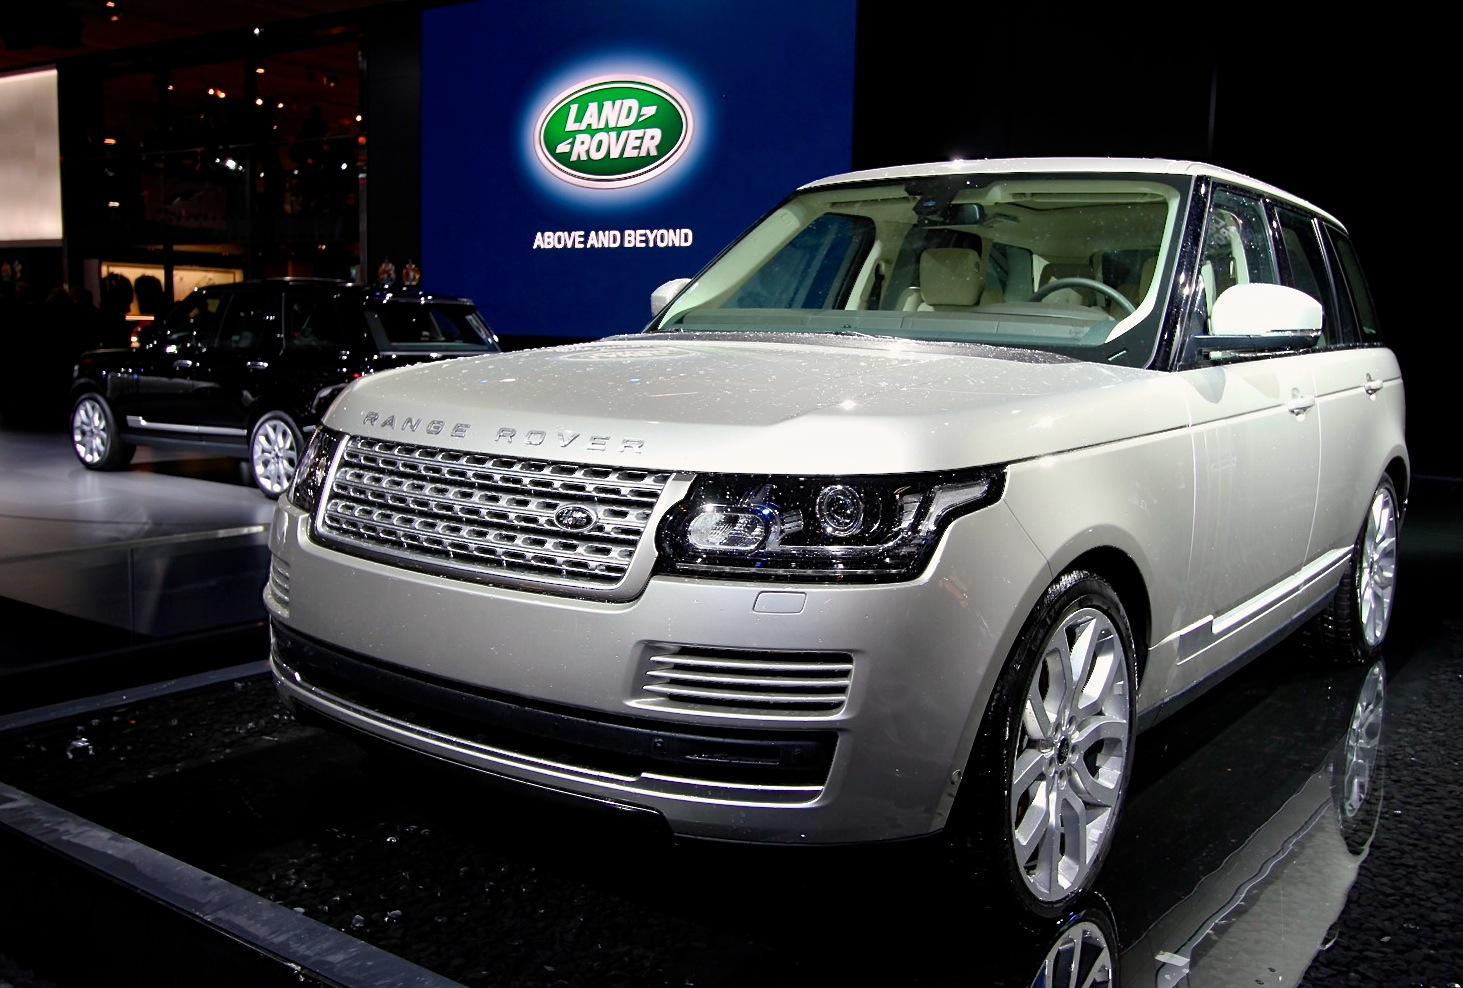 range rover sport 2012 owners manual pdf